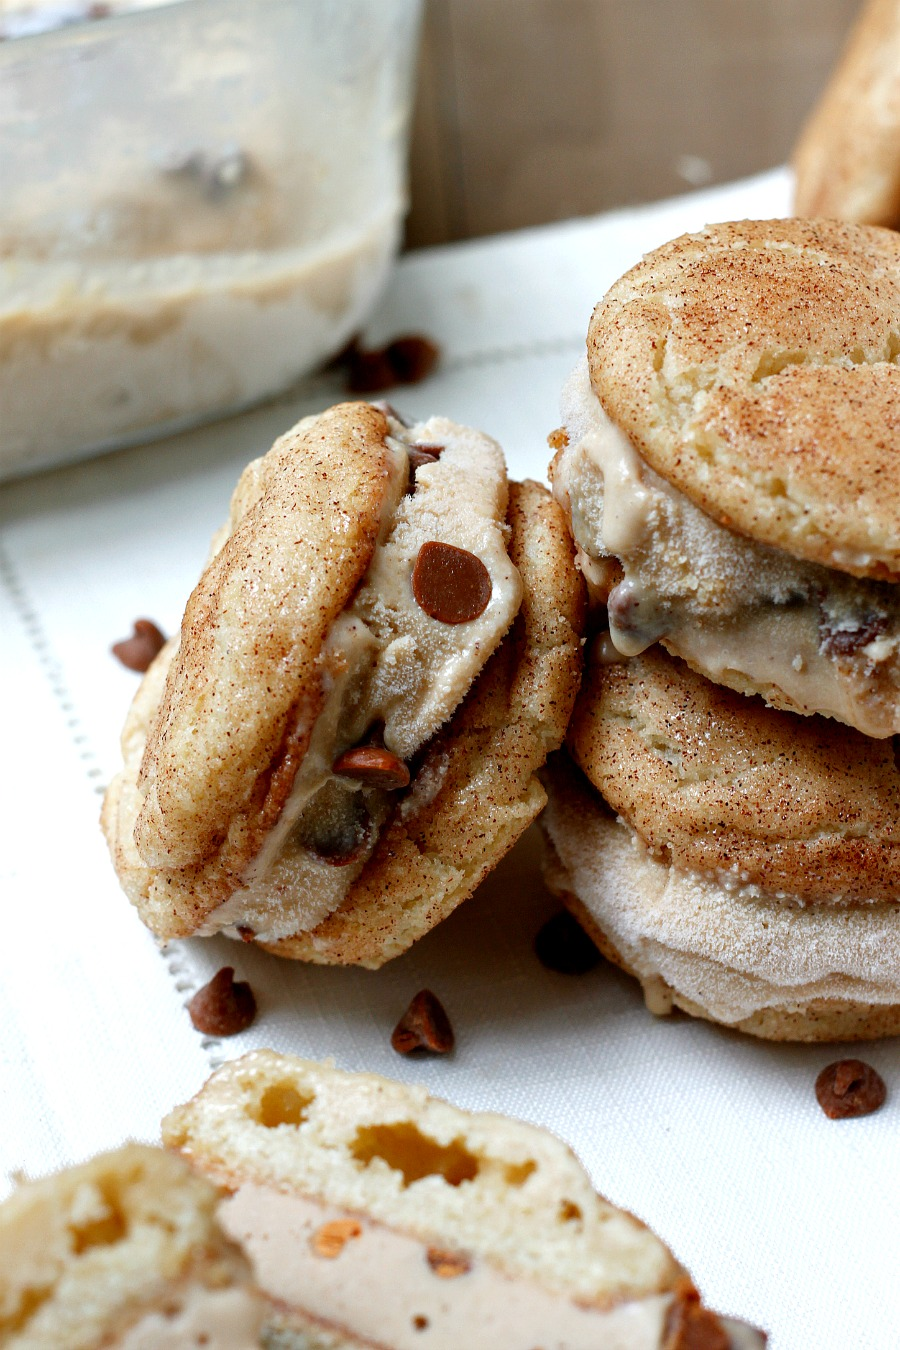 belle vie - Snickerdoodle Biscoff Ice Cream Sandwiches - belle vie